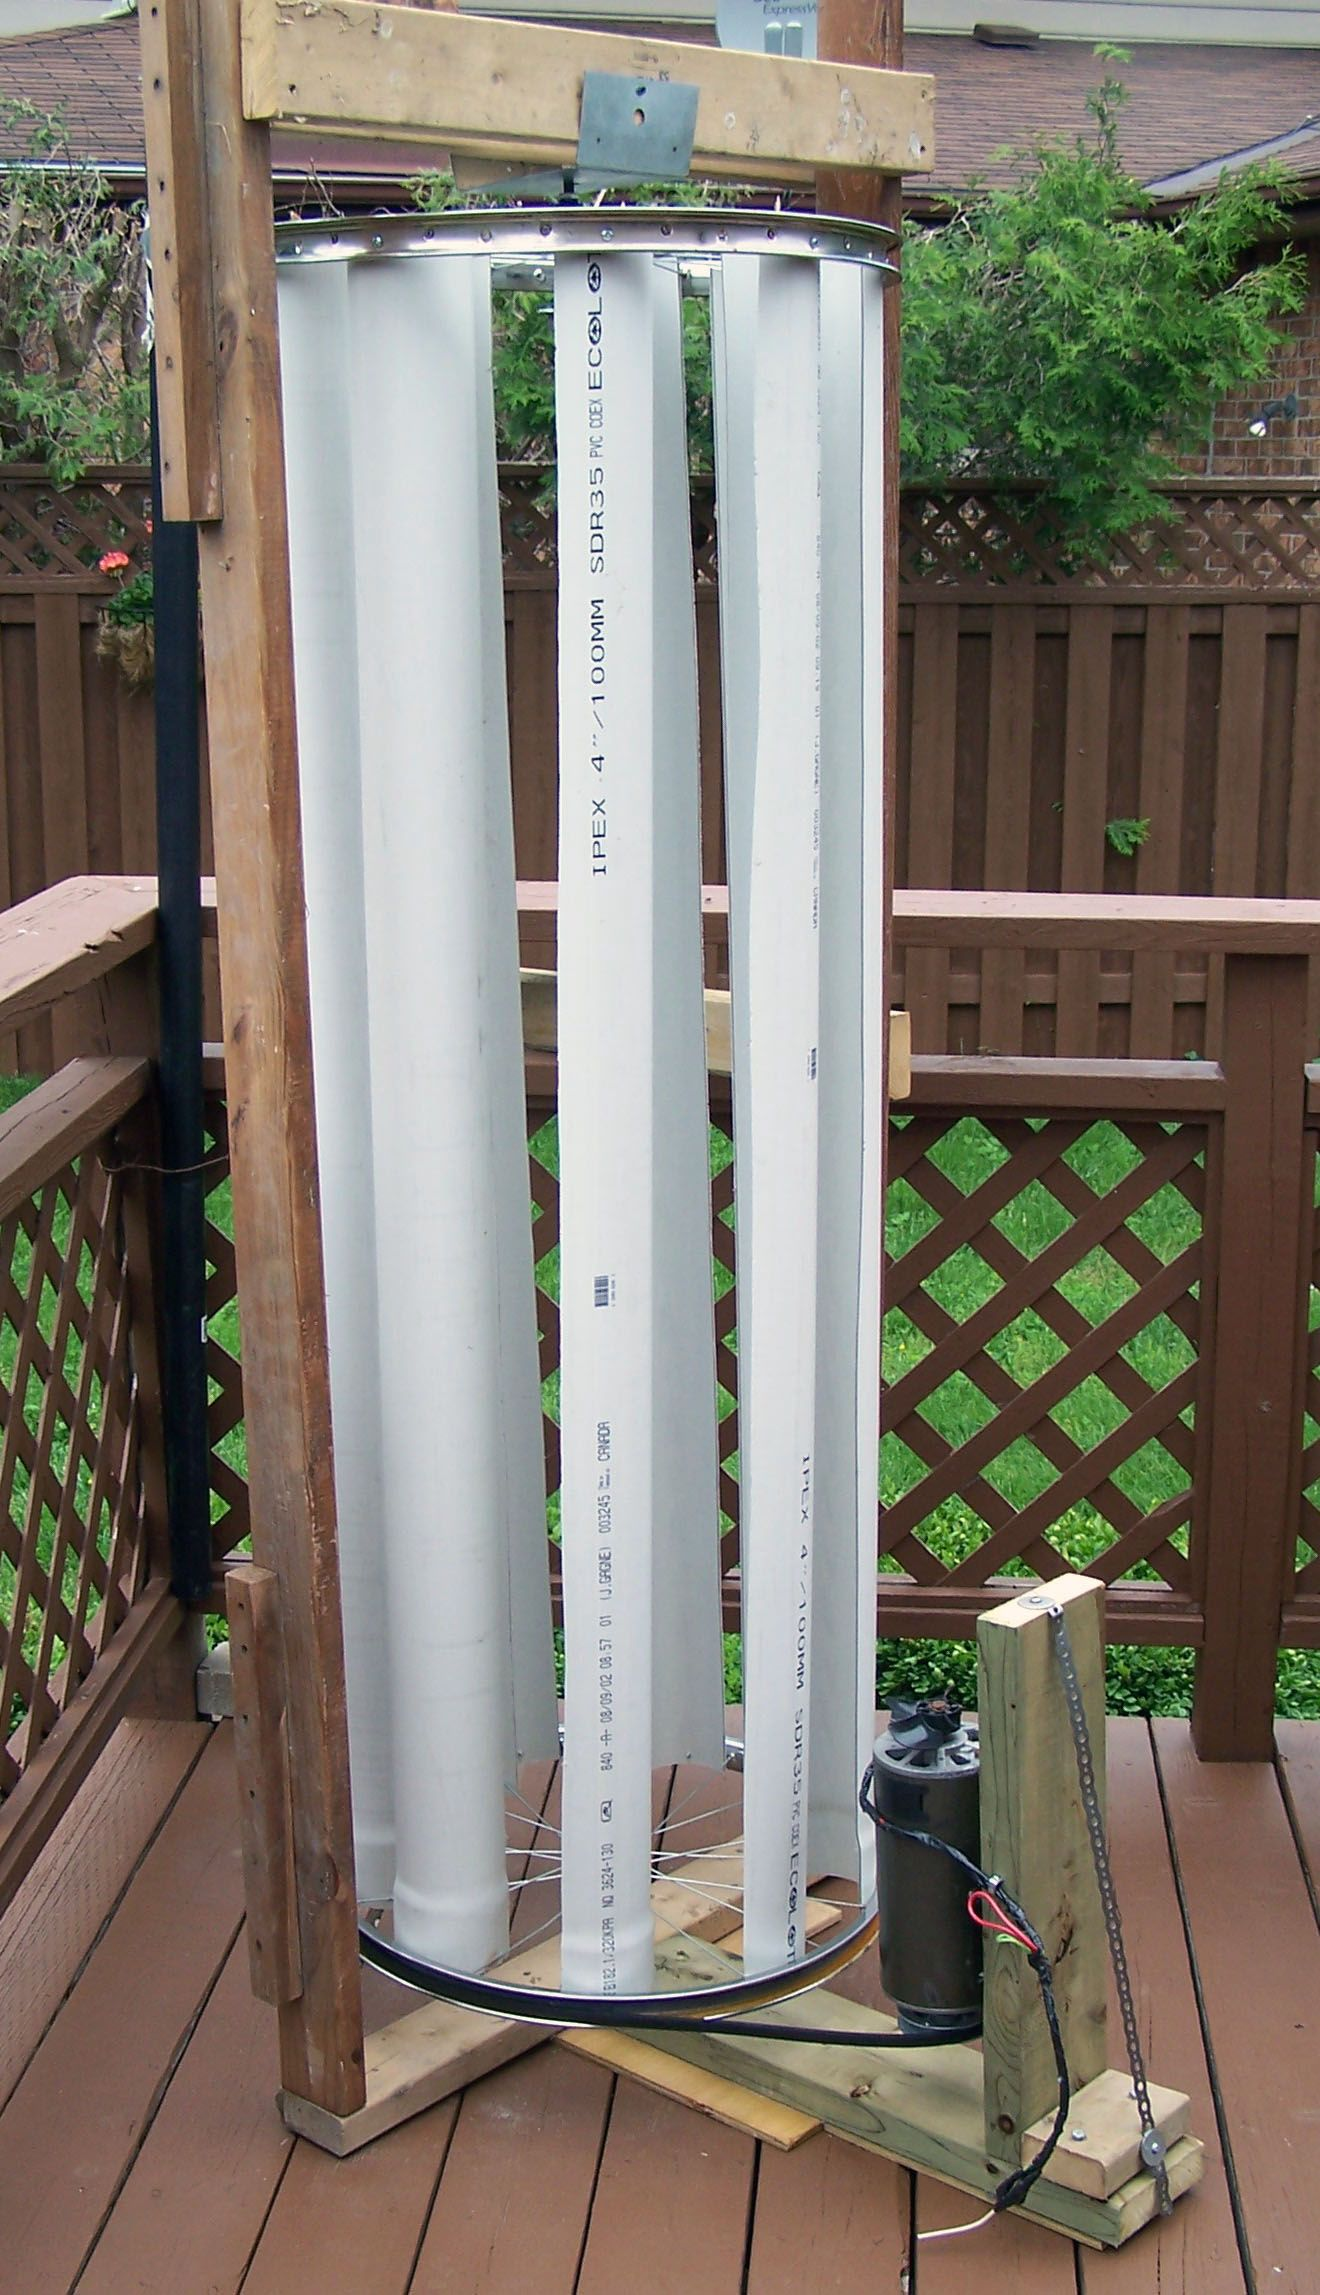 How to build a small vertical wind turbine